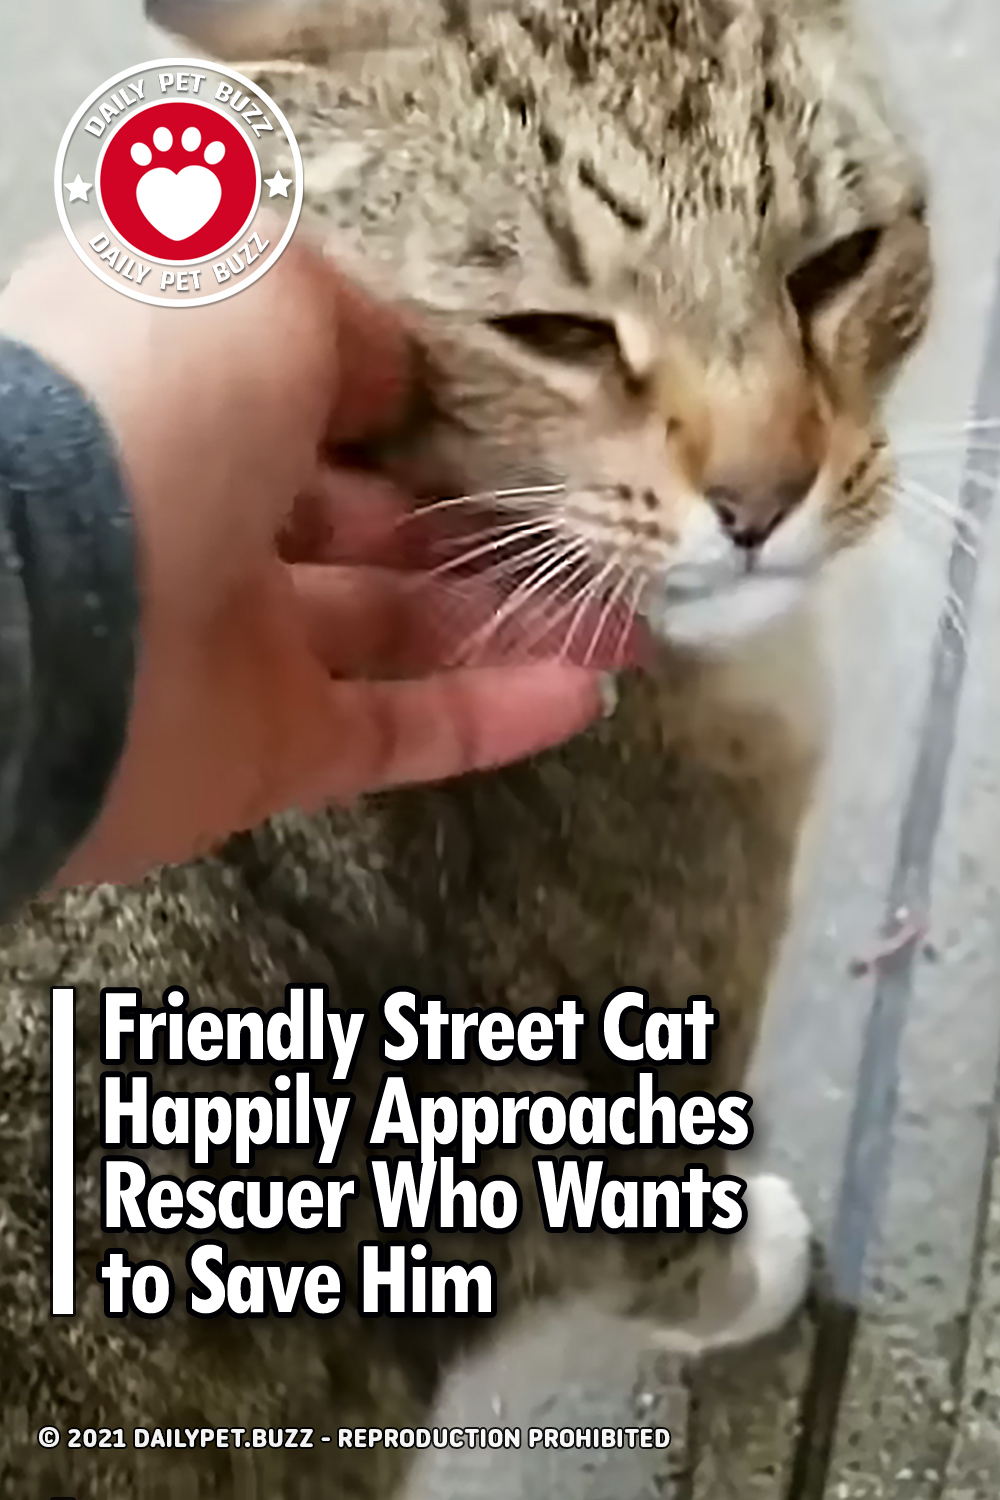 Friendly Street Cat Happily Approaches Rescuer Who Wants to Save Him